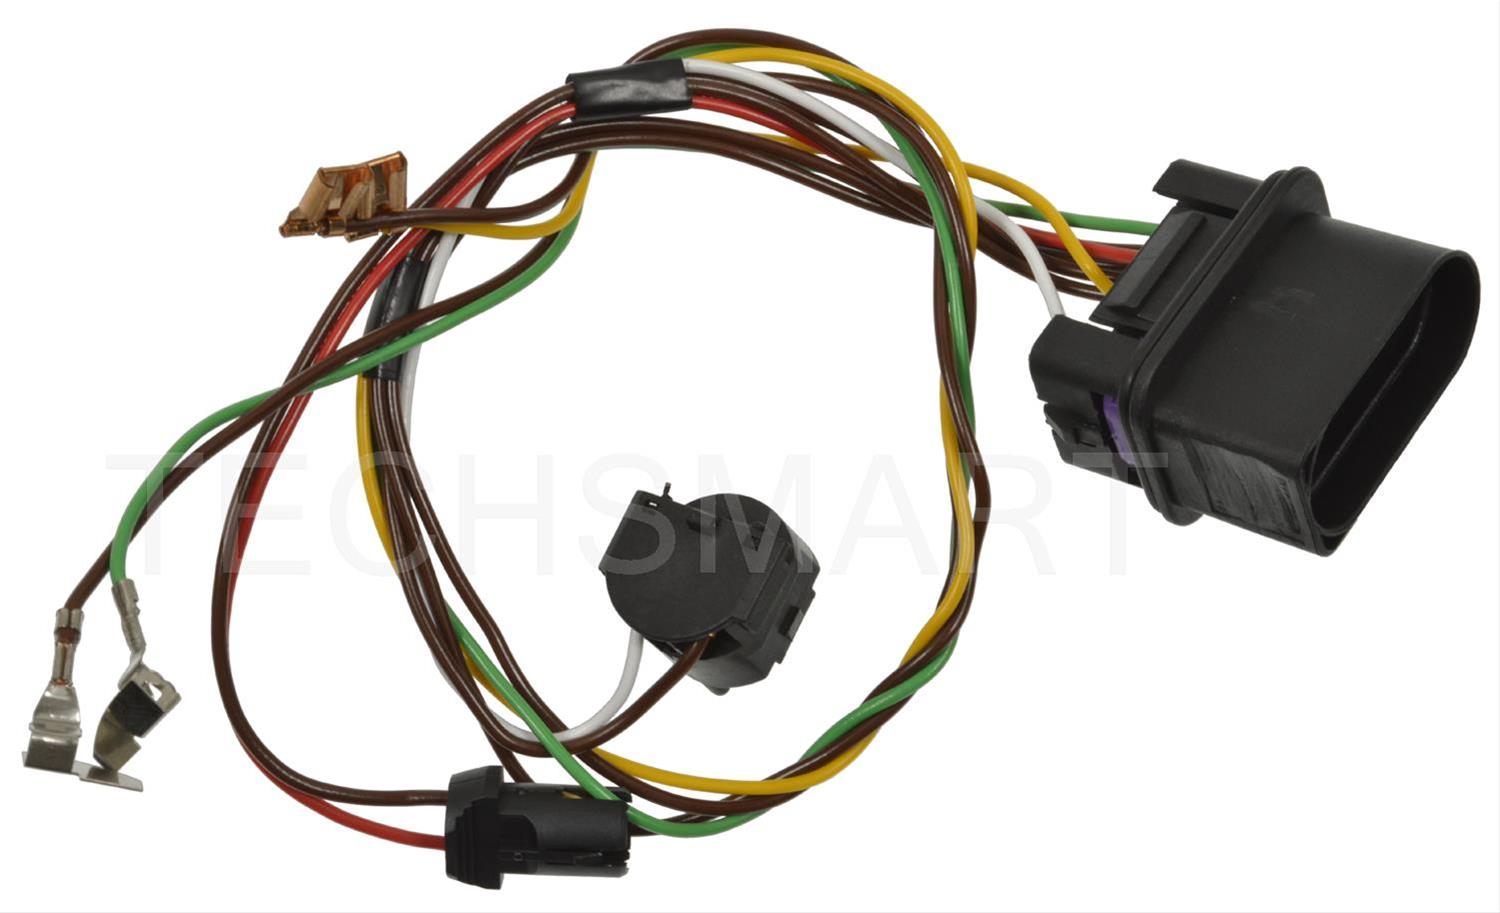 hight resolution of standard motor headlight wiring harnesses f90004 free shipping on orders over 99 at summit racing